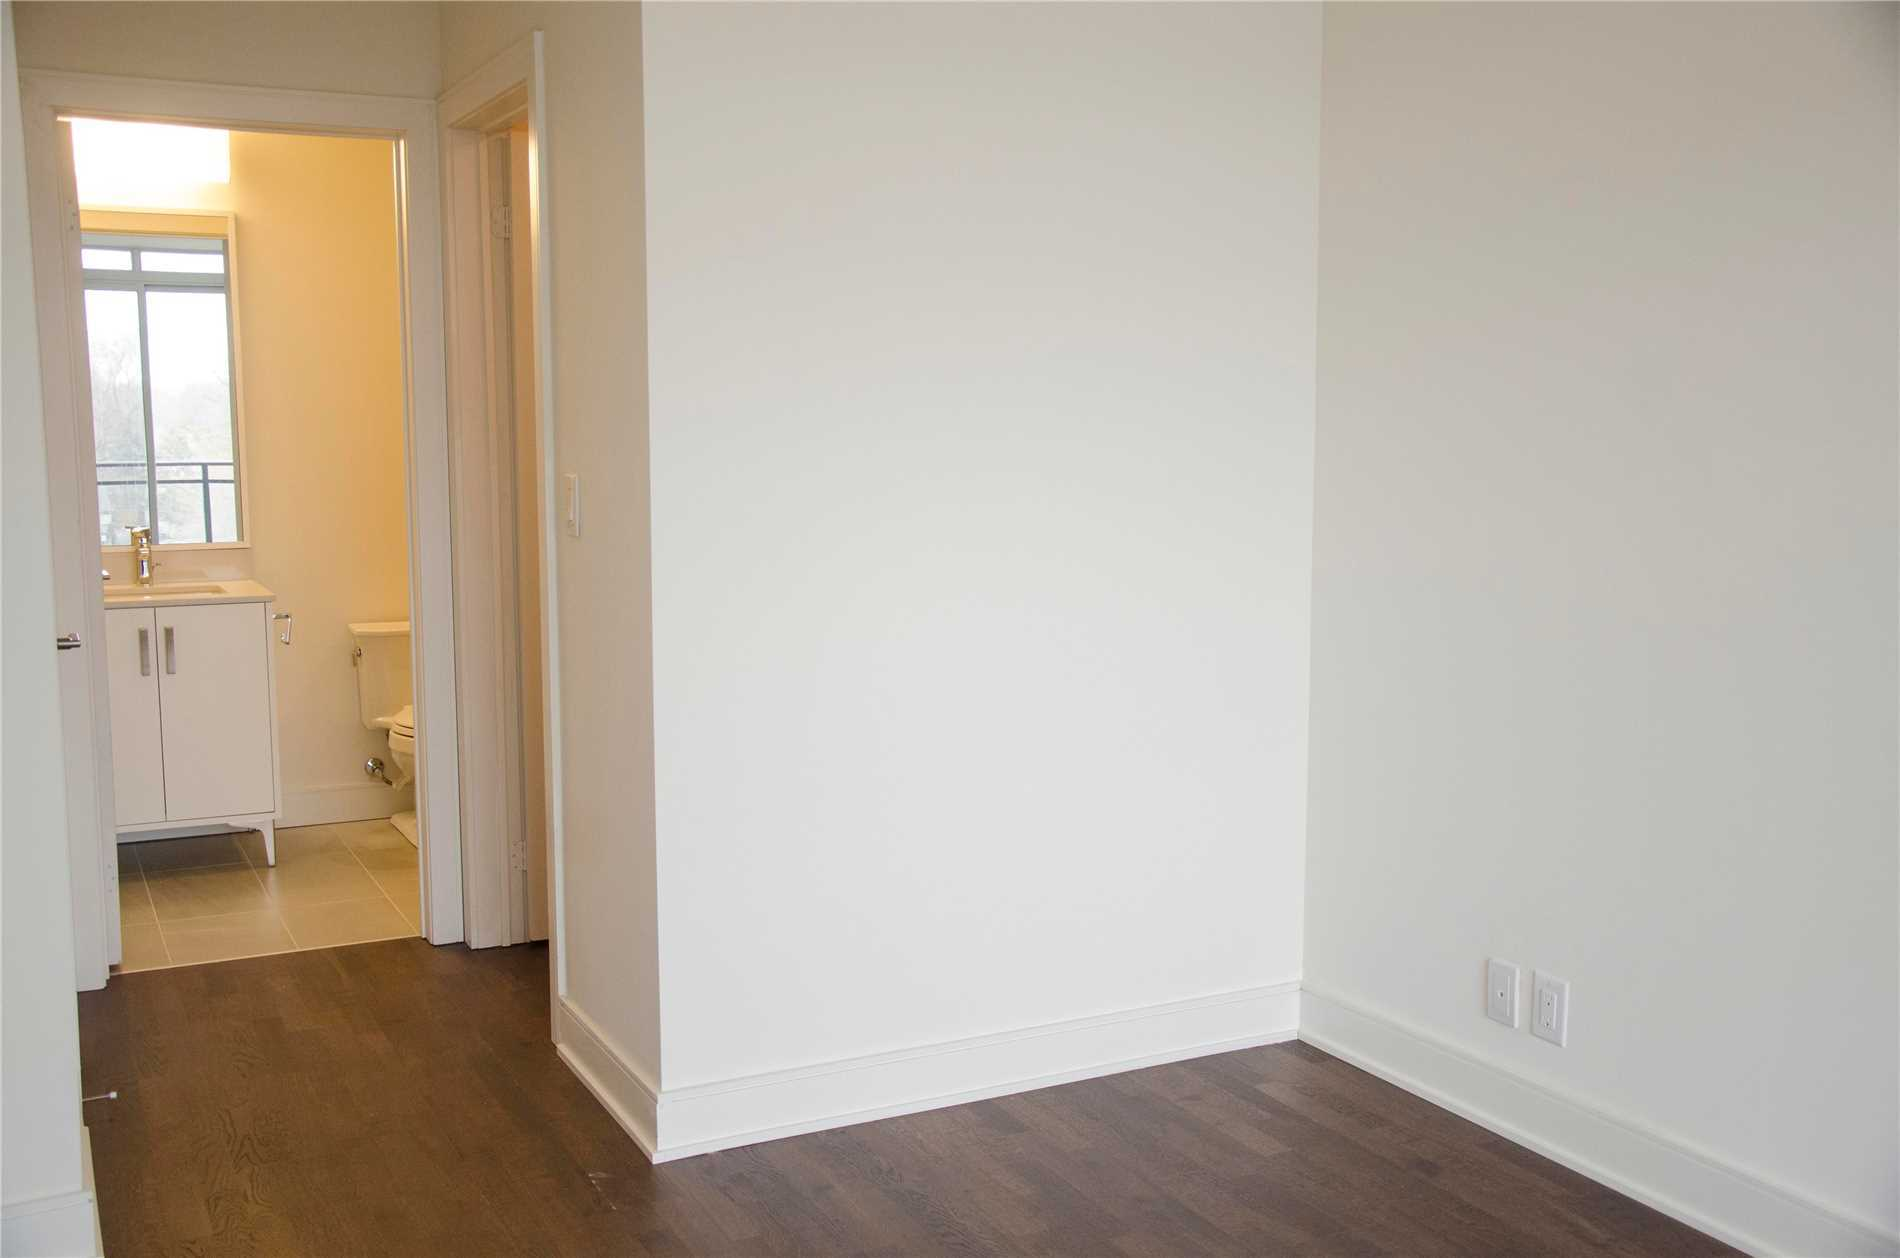 #322 - 1575 Lakeshore Rd W, Mississauga W4382838